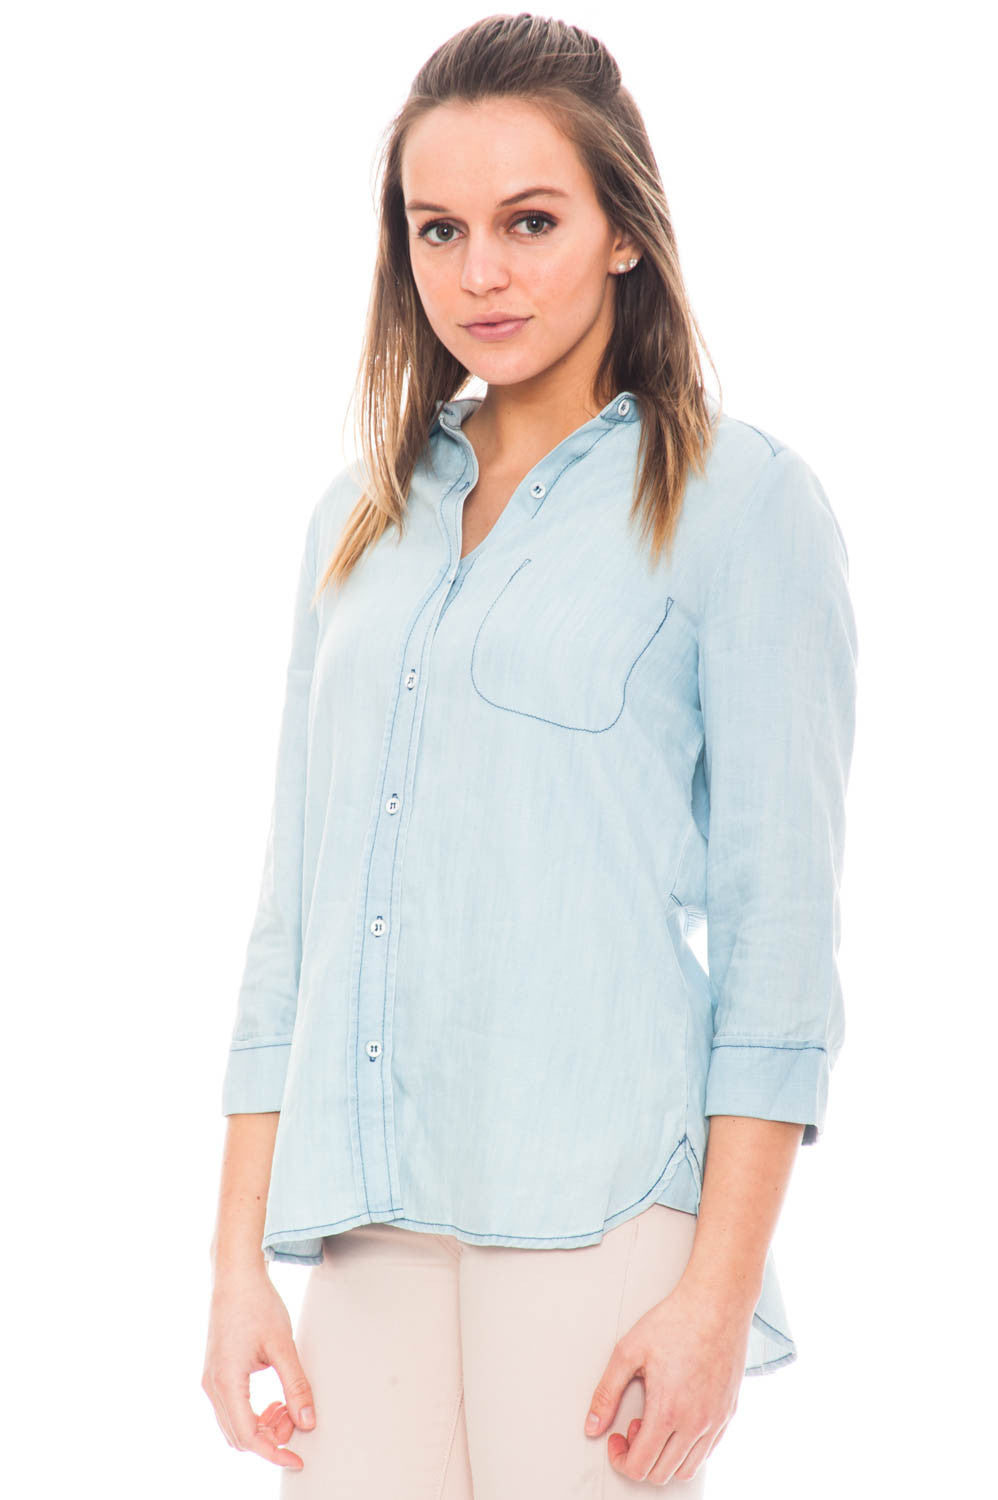 Shirt - Button Down Chambray Shirt with a Back Slit